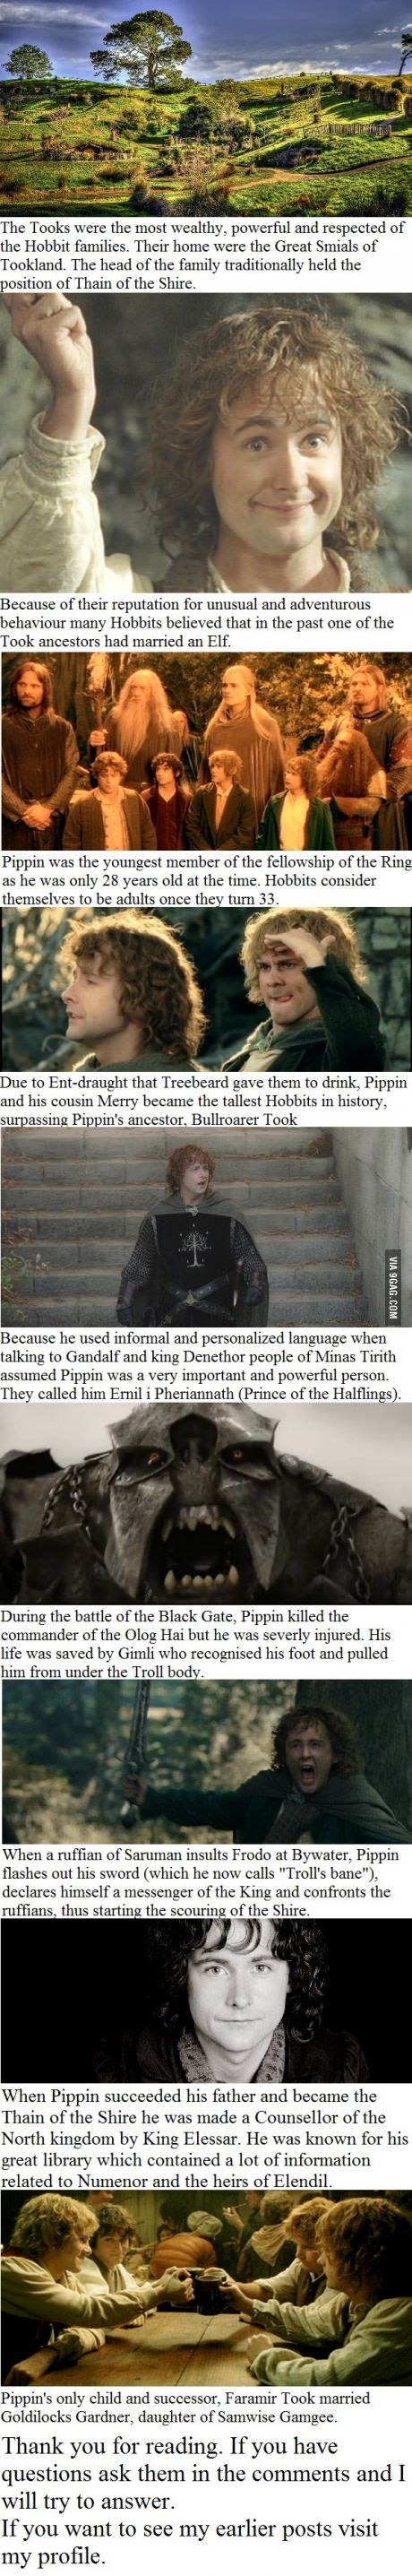 10 Peregrin Took facts you may not have known